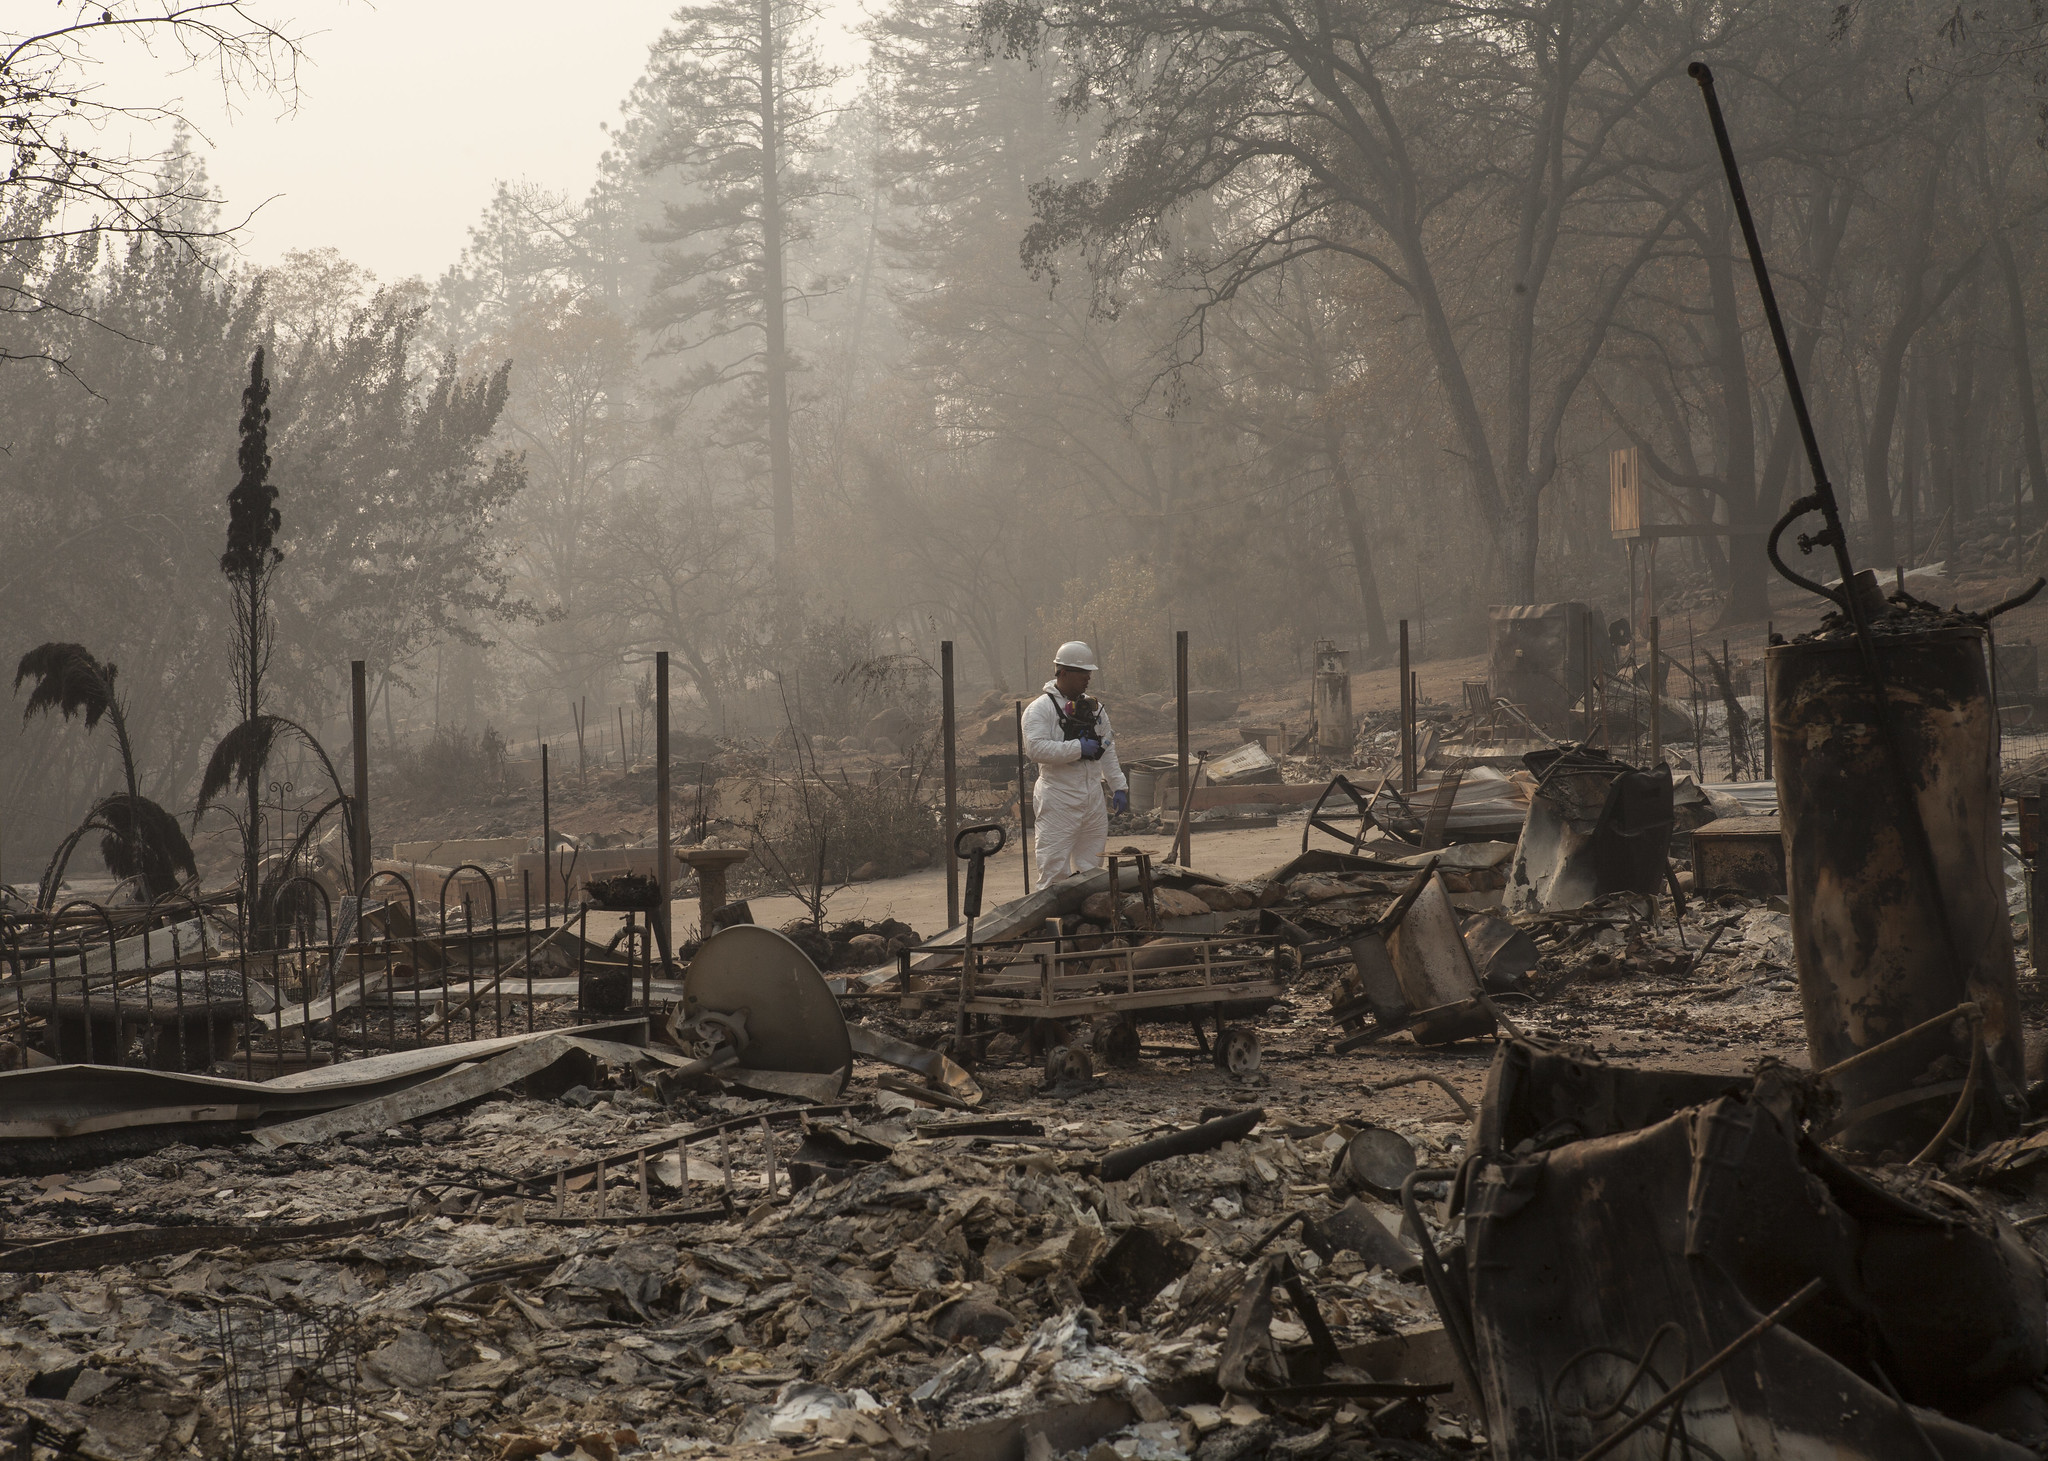 Wildfires Can Leave Toxic Drinking Water Behind – Here's How to Protect the Public